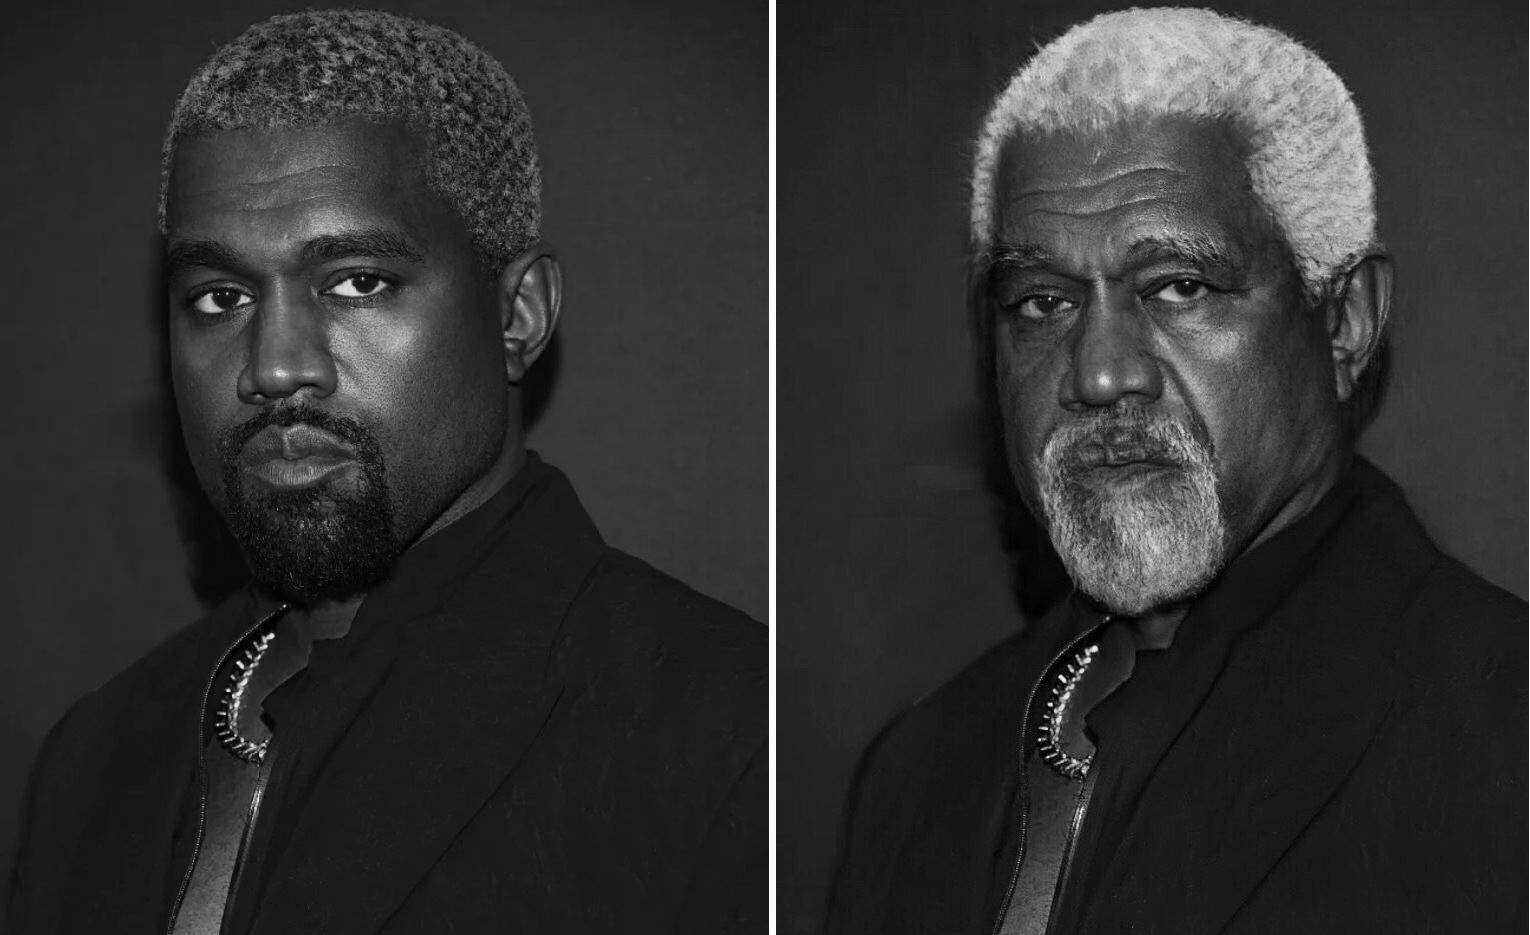 FACE APP applied on Kanye West